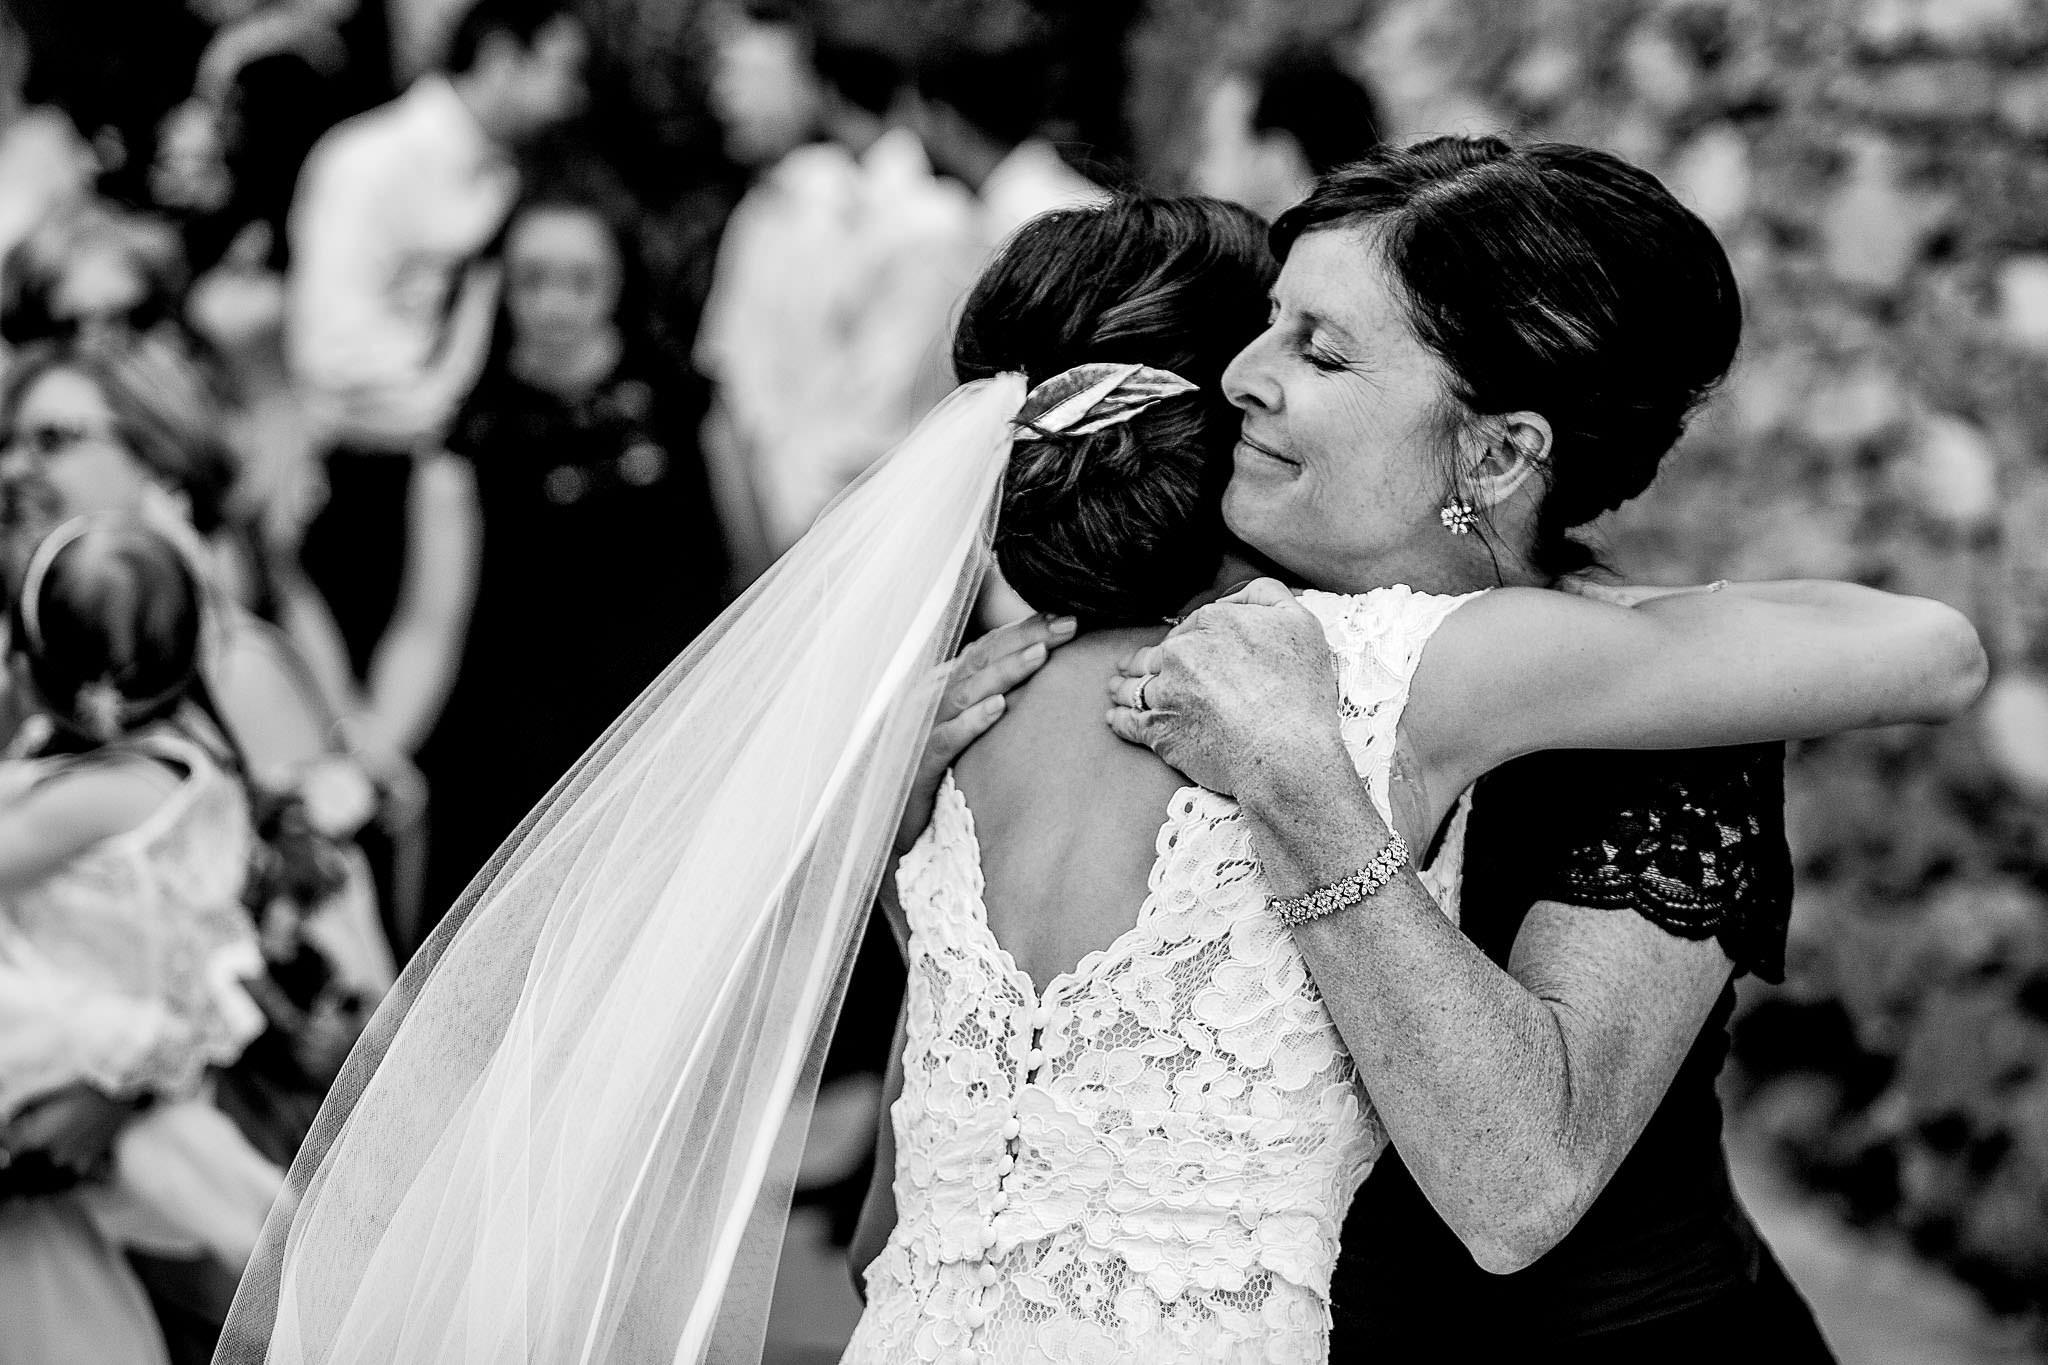 Emotional hugging at chateau wedding in Cirque de Navacelles outside Montpellier France